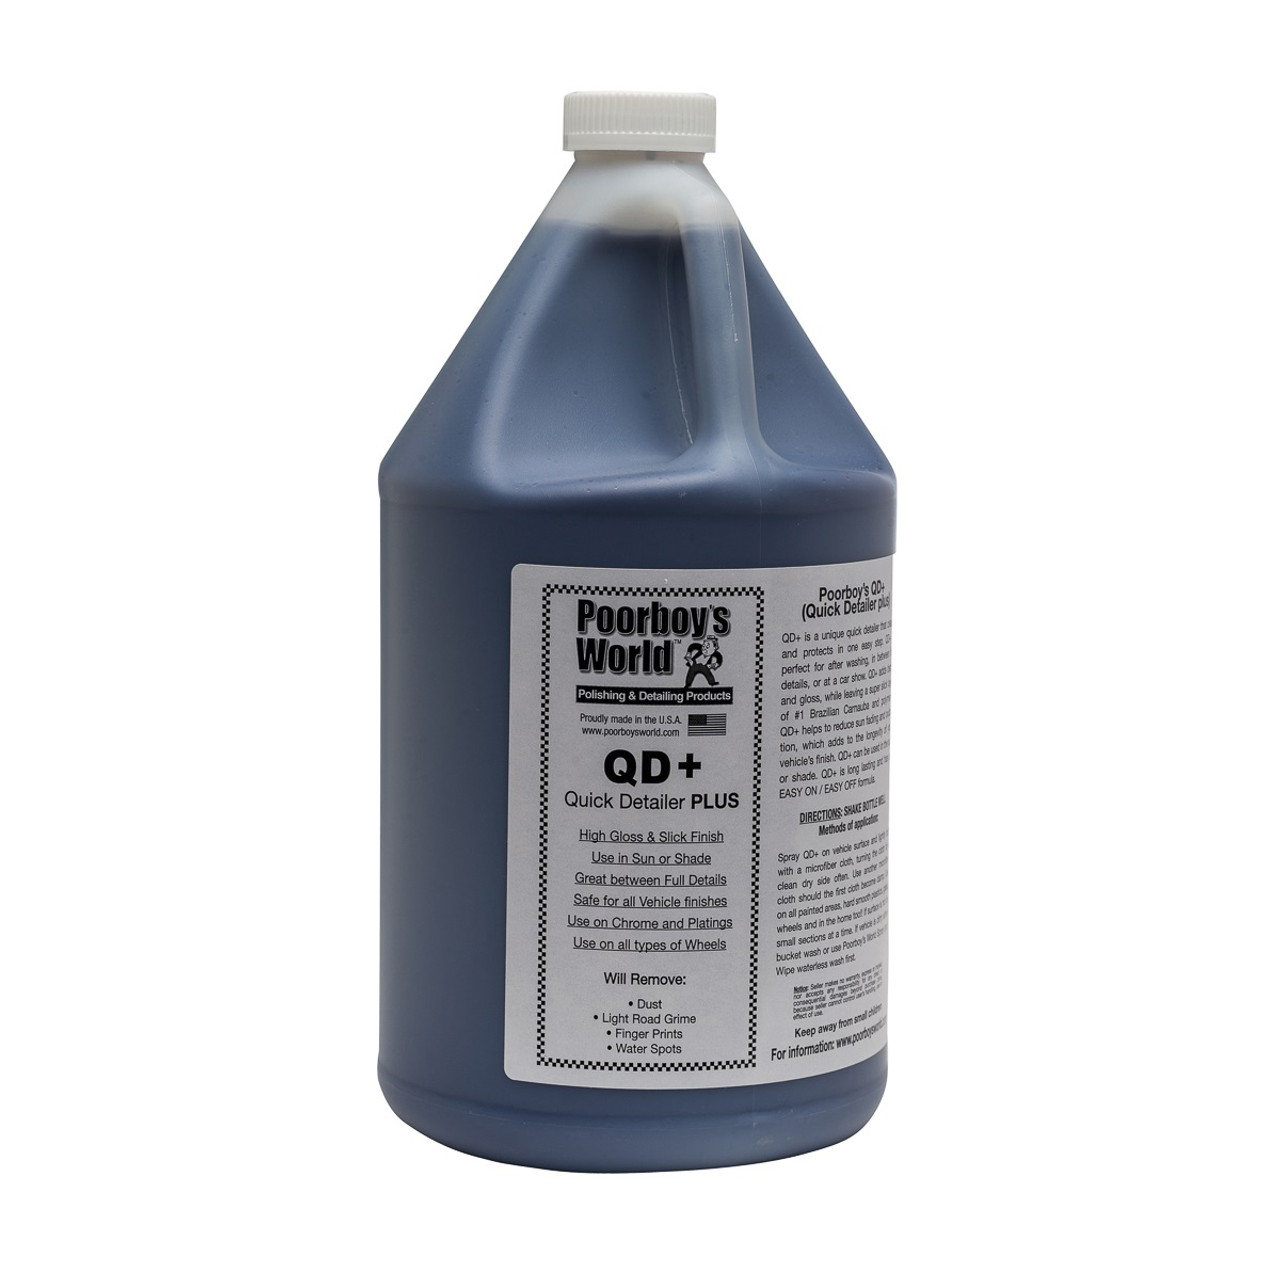 Poorboy's World QD+ Gallon